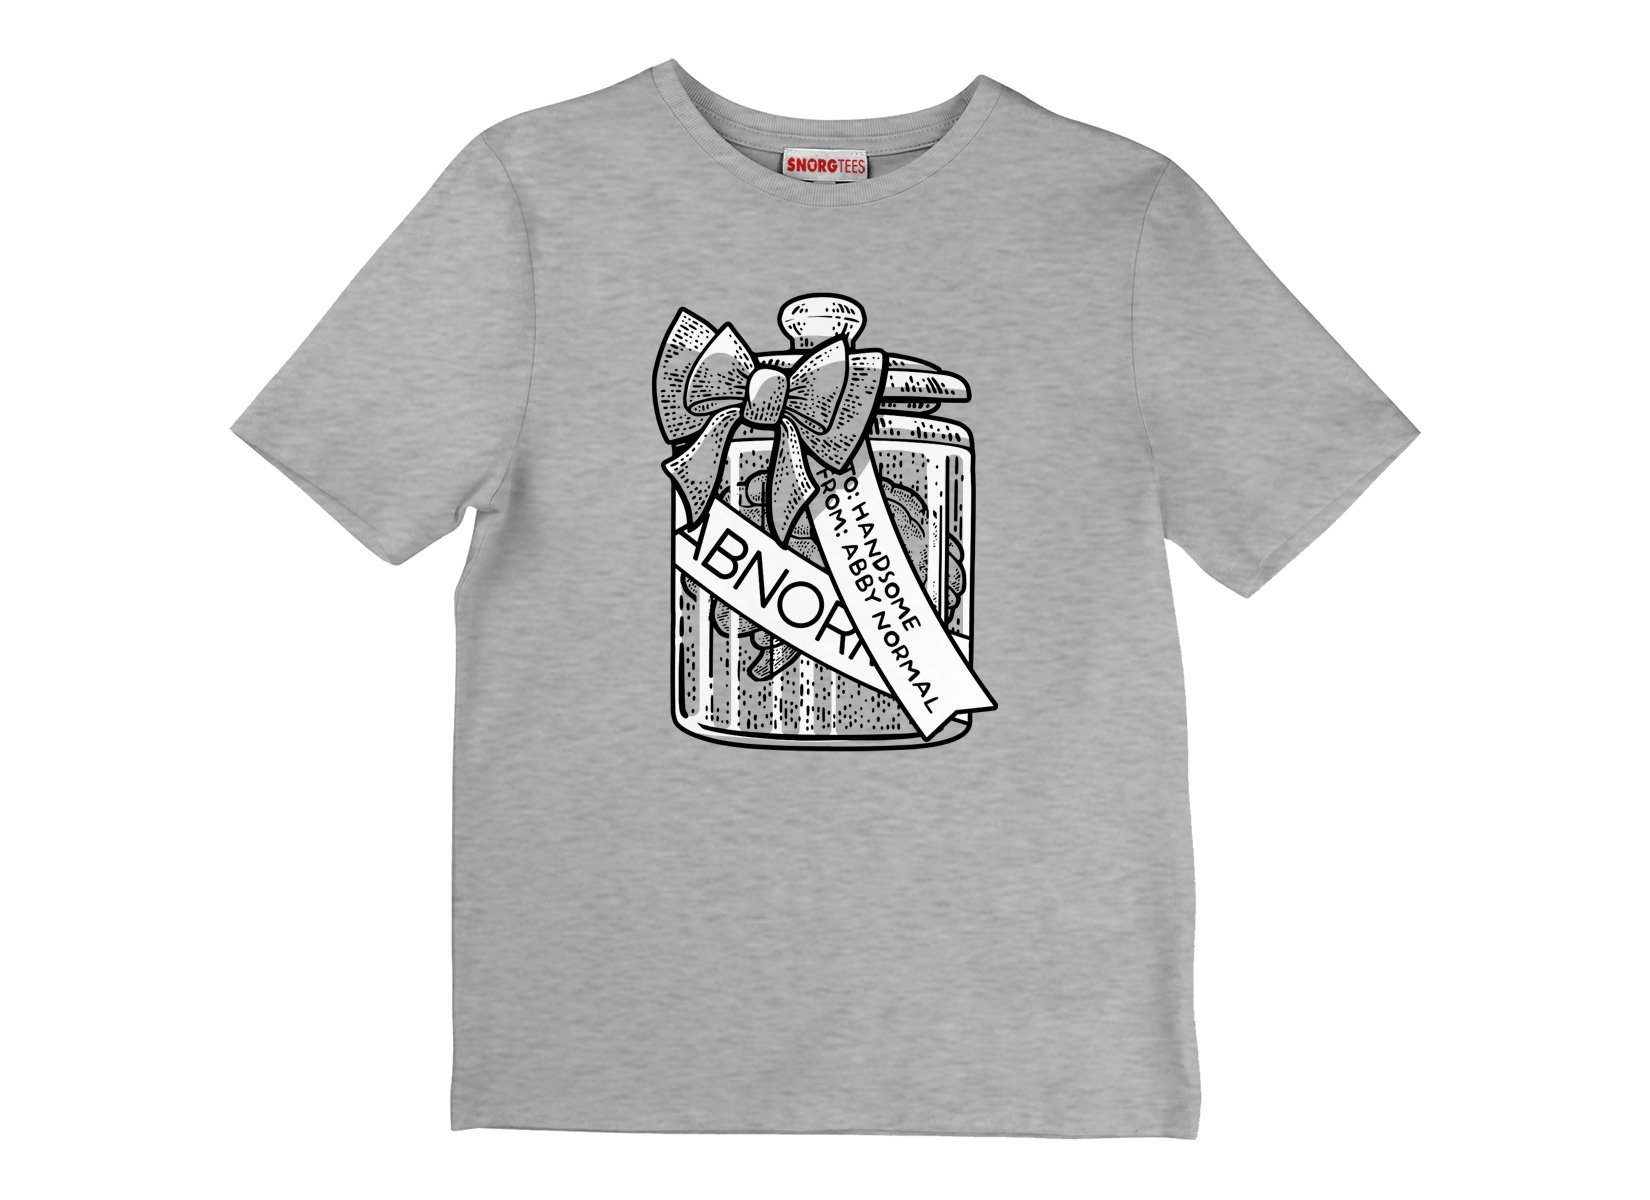 From Abby Normal on Kids T-Shirt